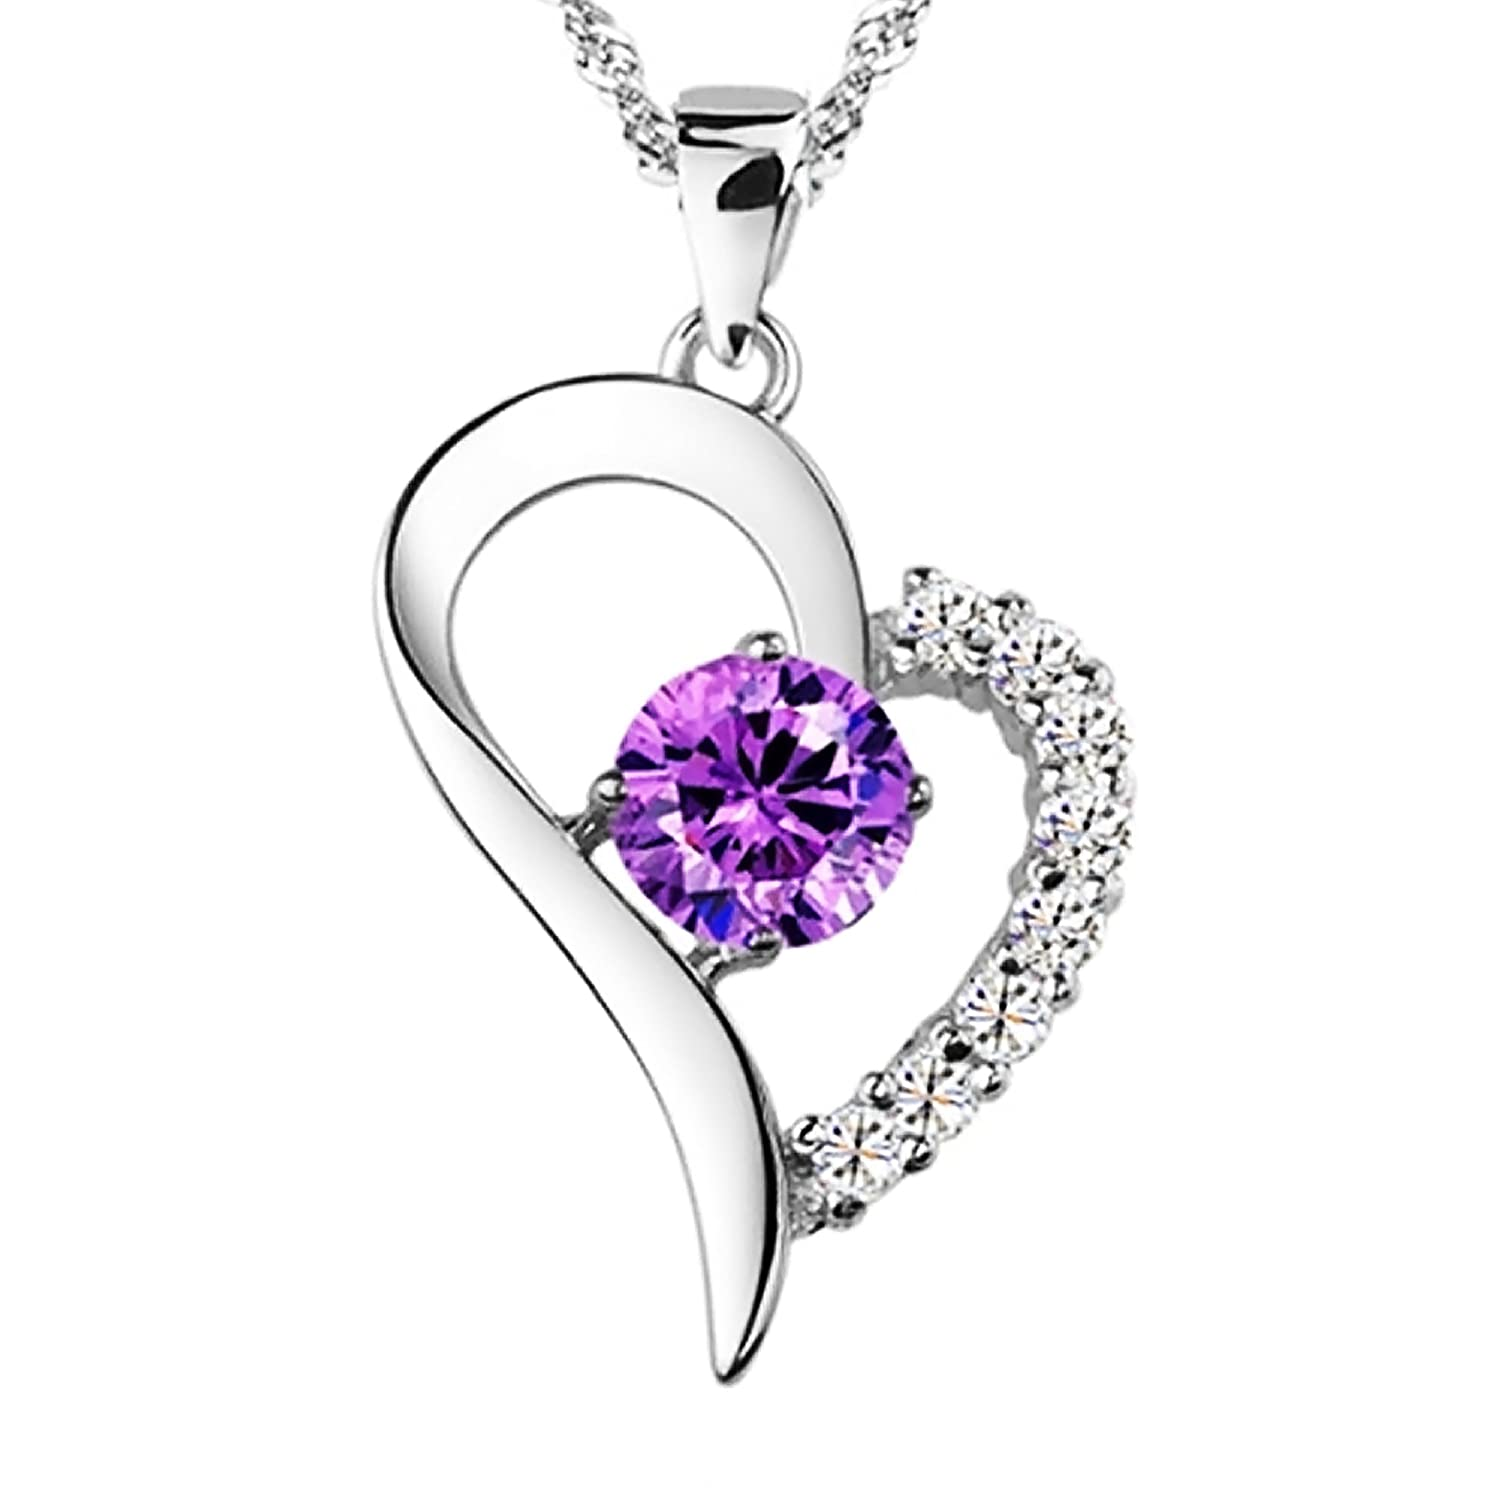 heart white jewelry wg nl with violac diamond platinum gold in purple topaz pendant gemstone